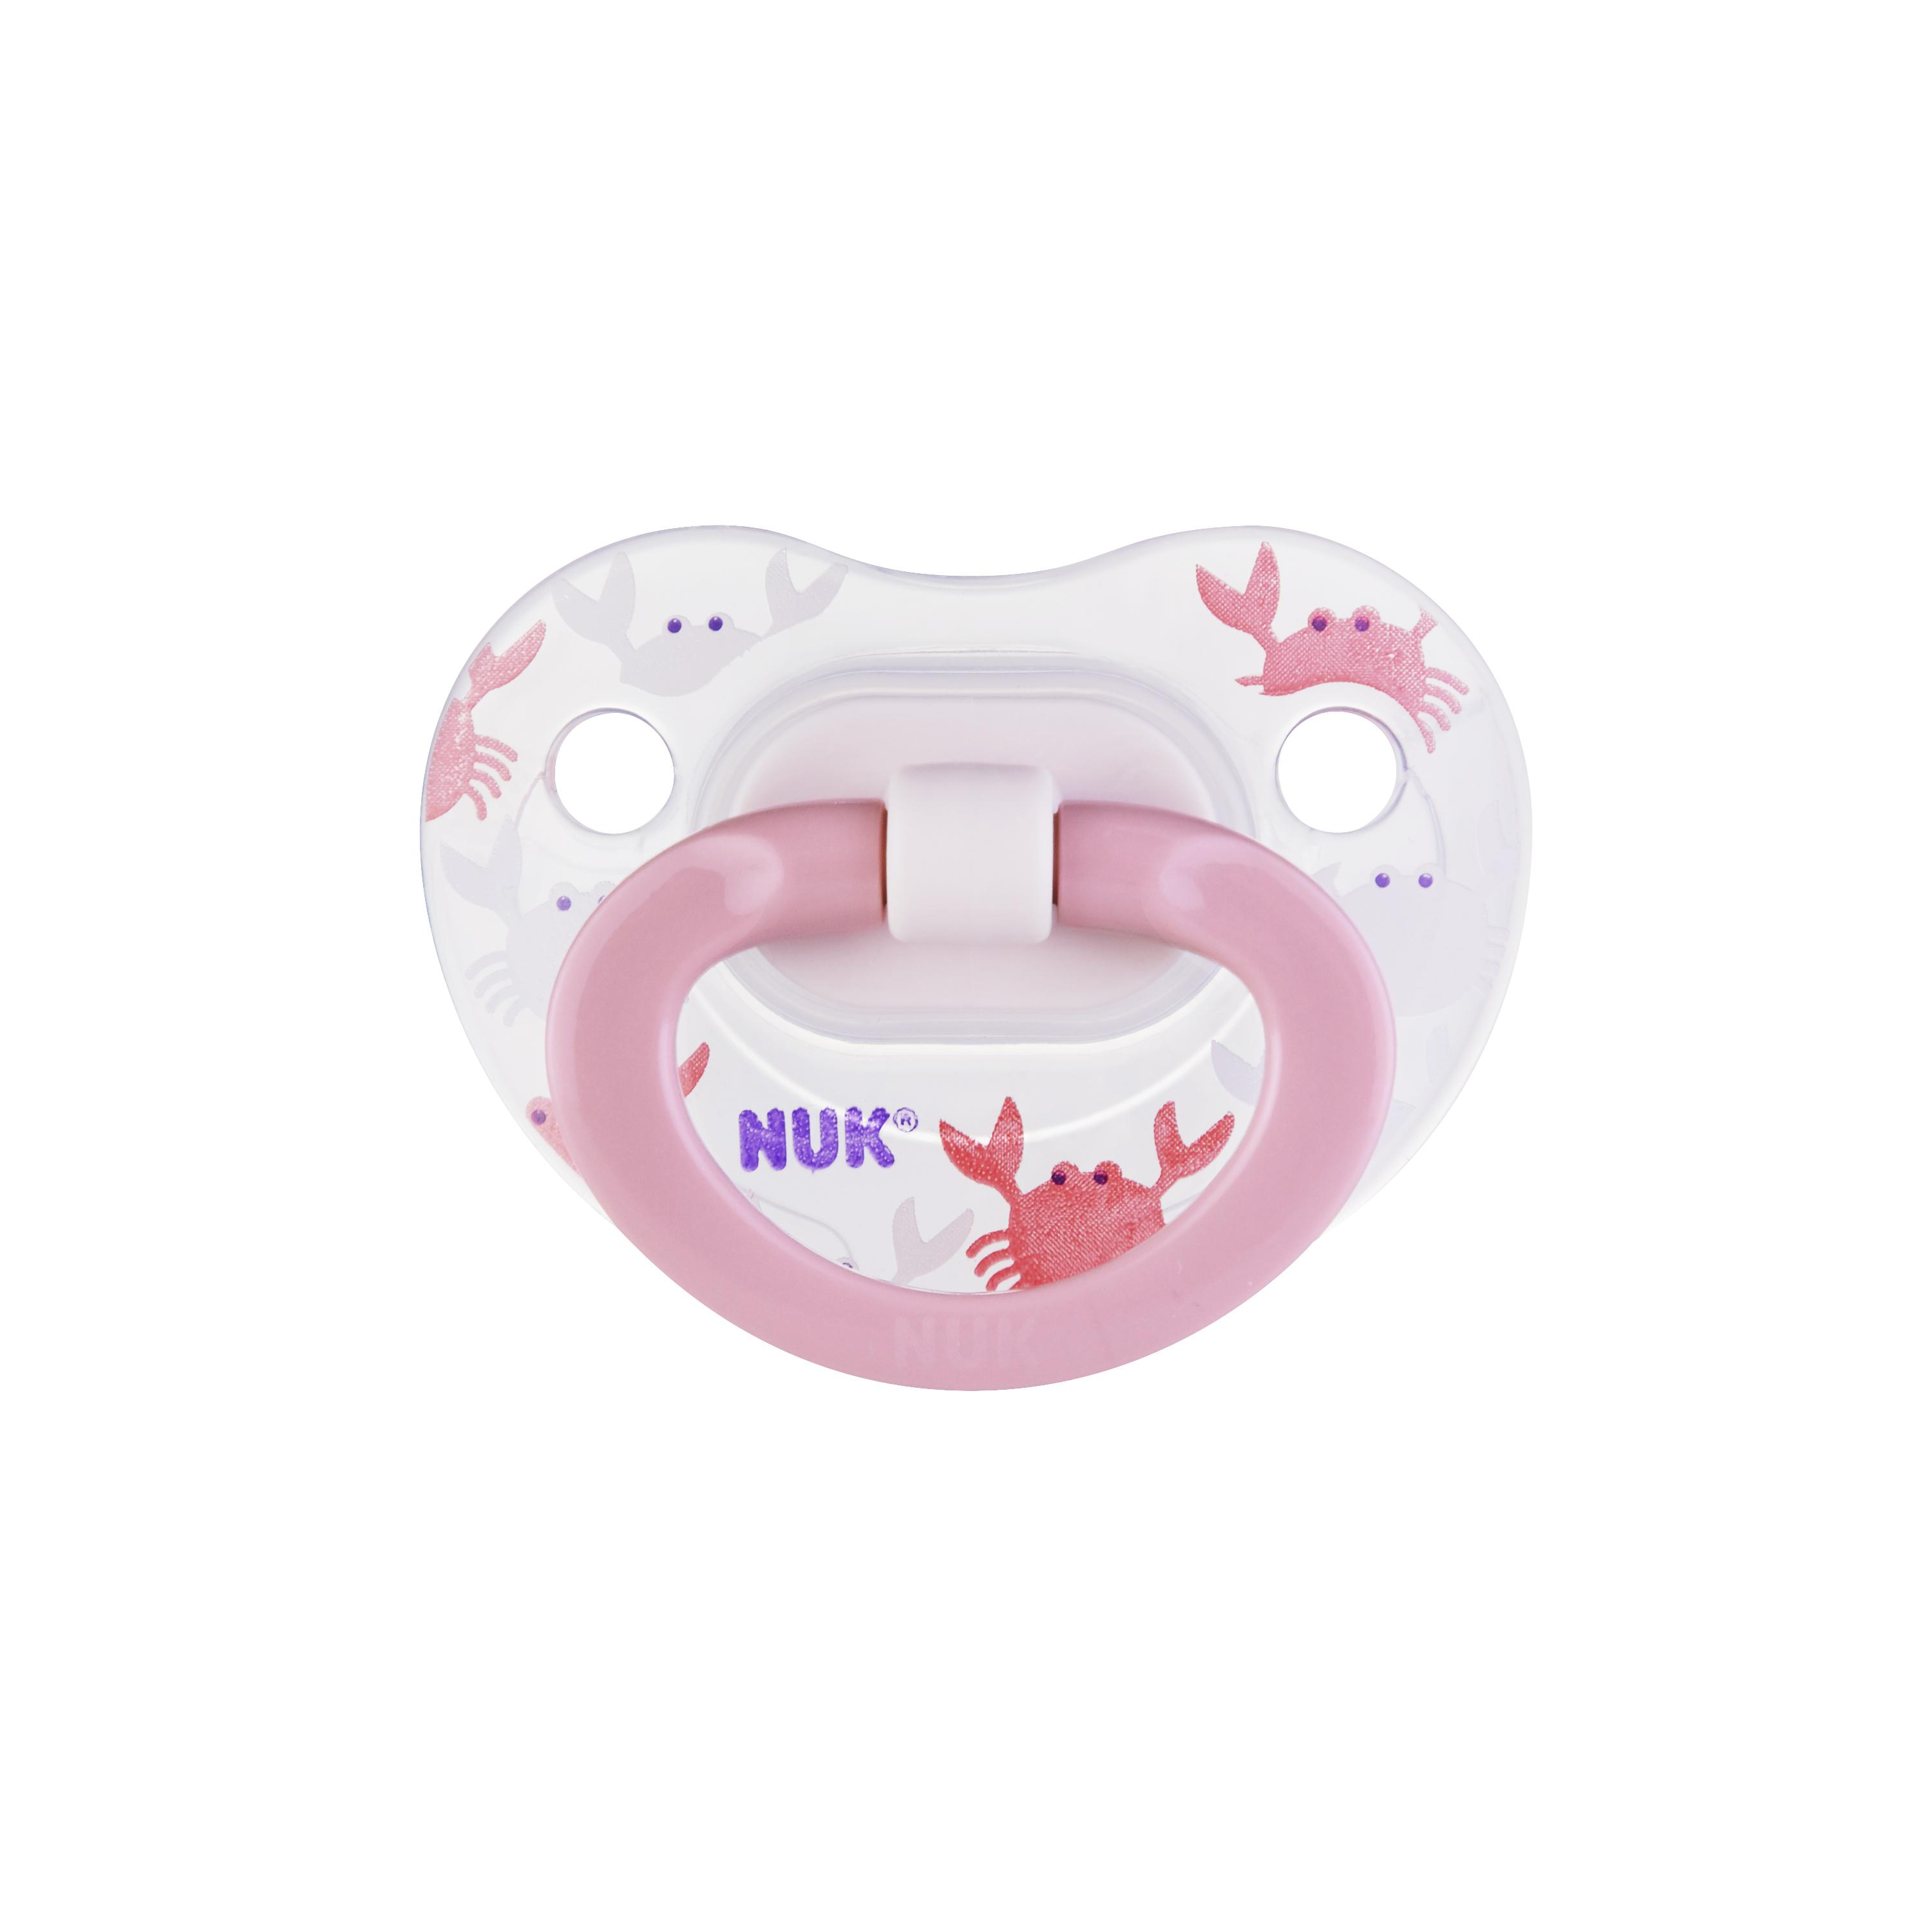 NUK® Orthodontic Pacifiers, 18-36 Months, 2-Pack Product Image 2 of 6